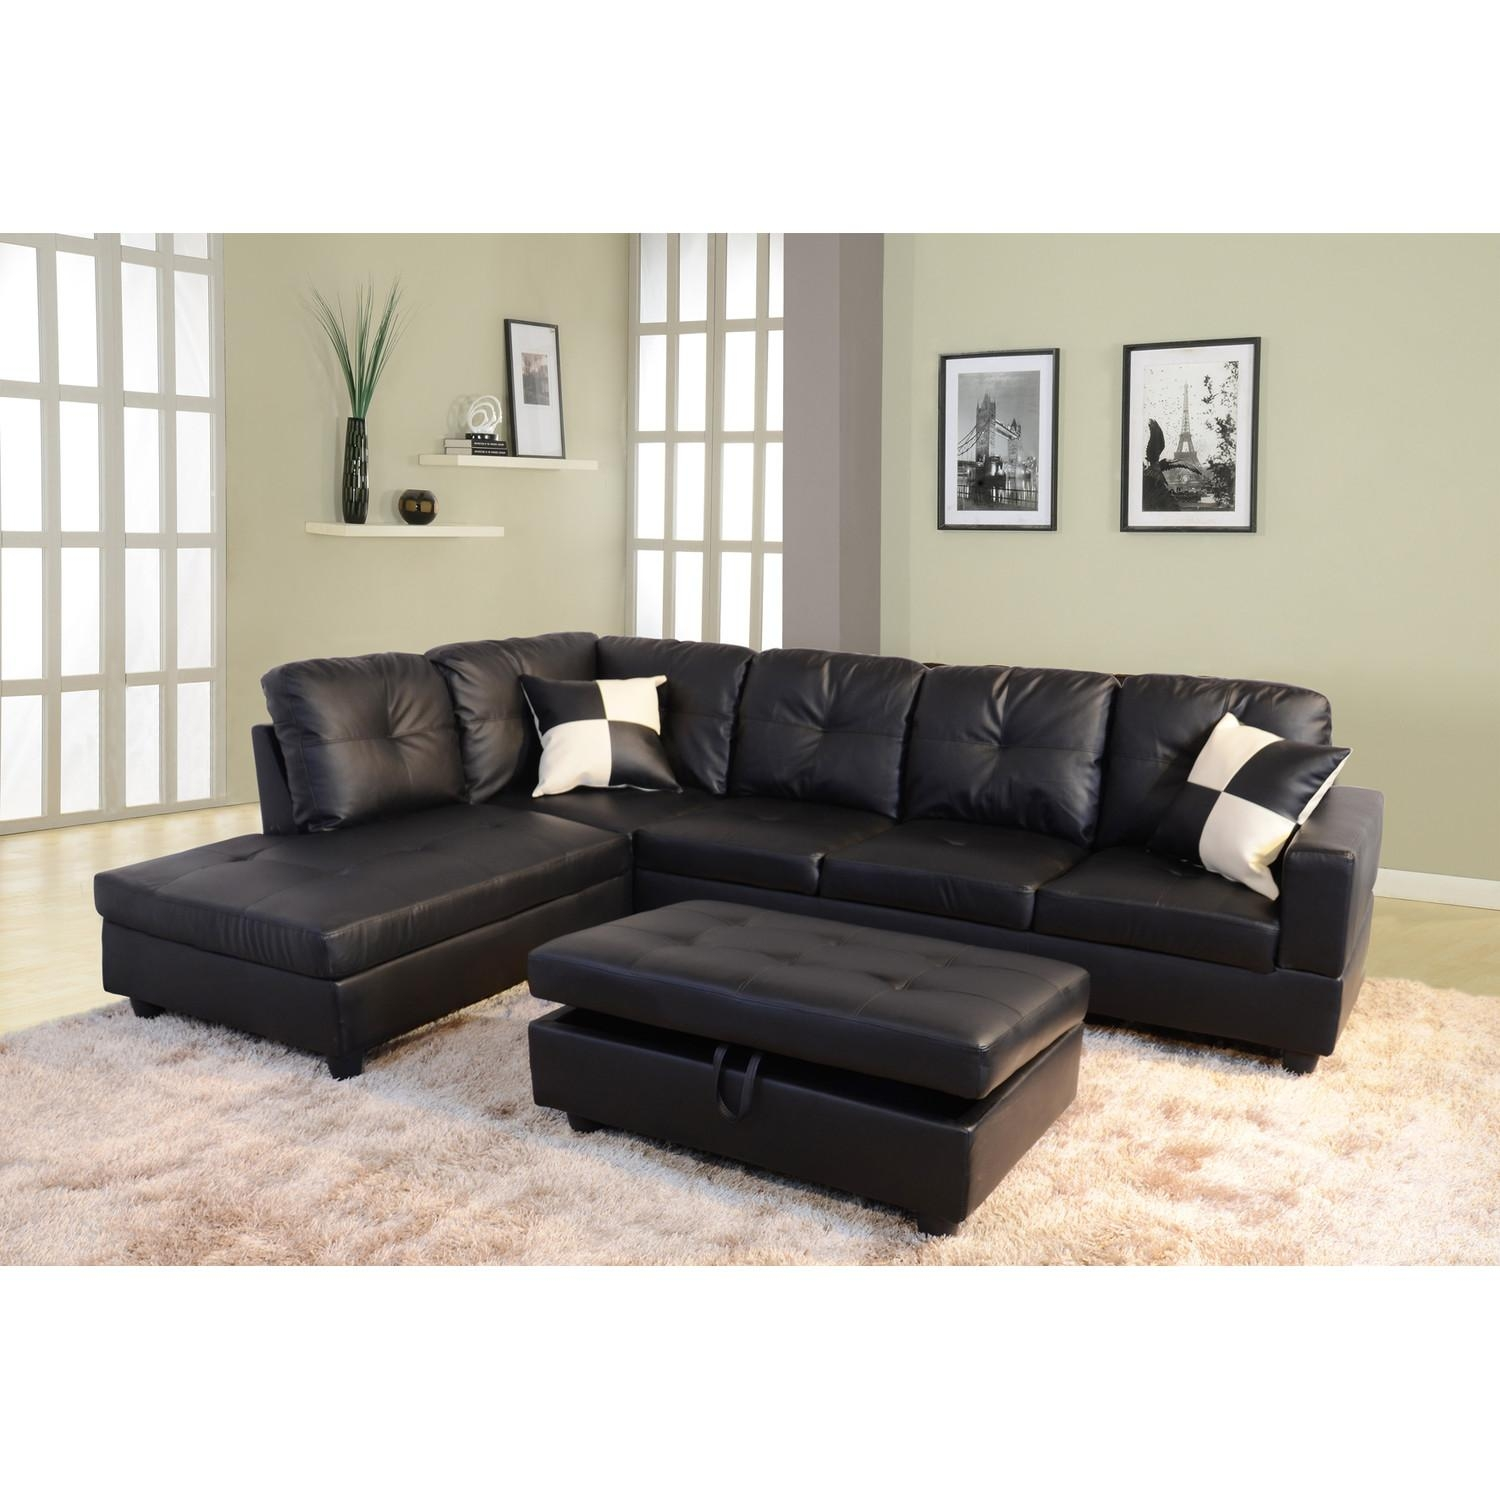 Furniture: Classic And Traditional Style Velvet Sectional Sofa For Within Tufted Sectional Sofa Chaise (View 11 of 20)